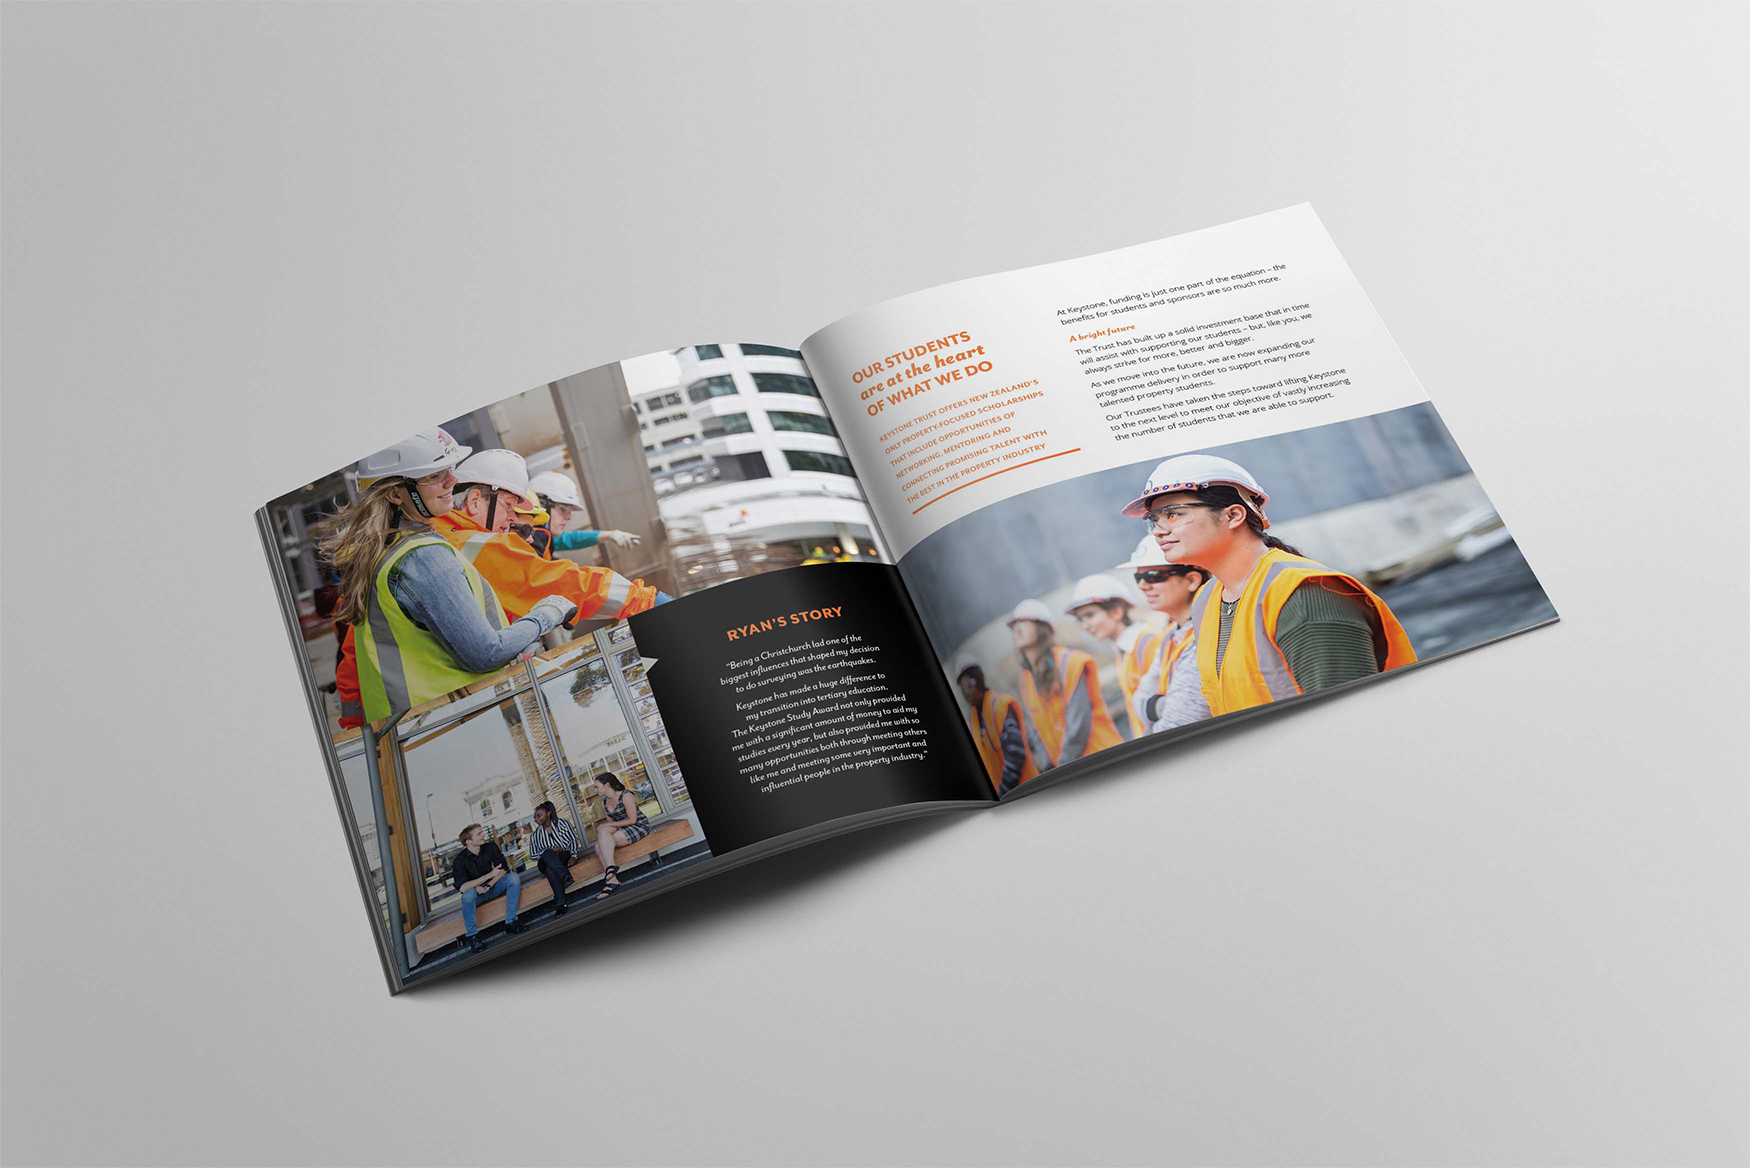 Keystone Trust profile square brochure open showing construction students